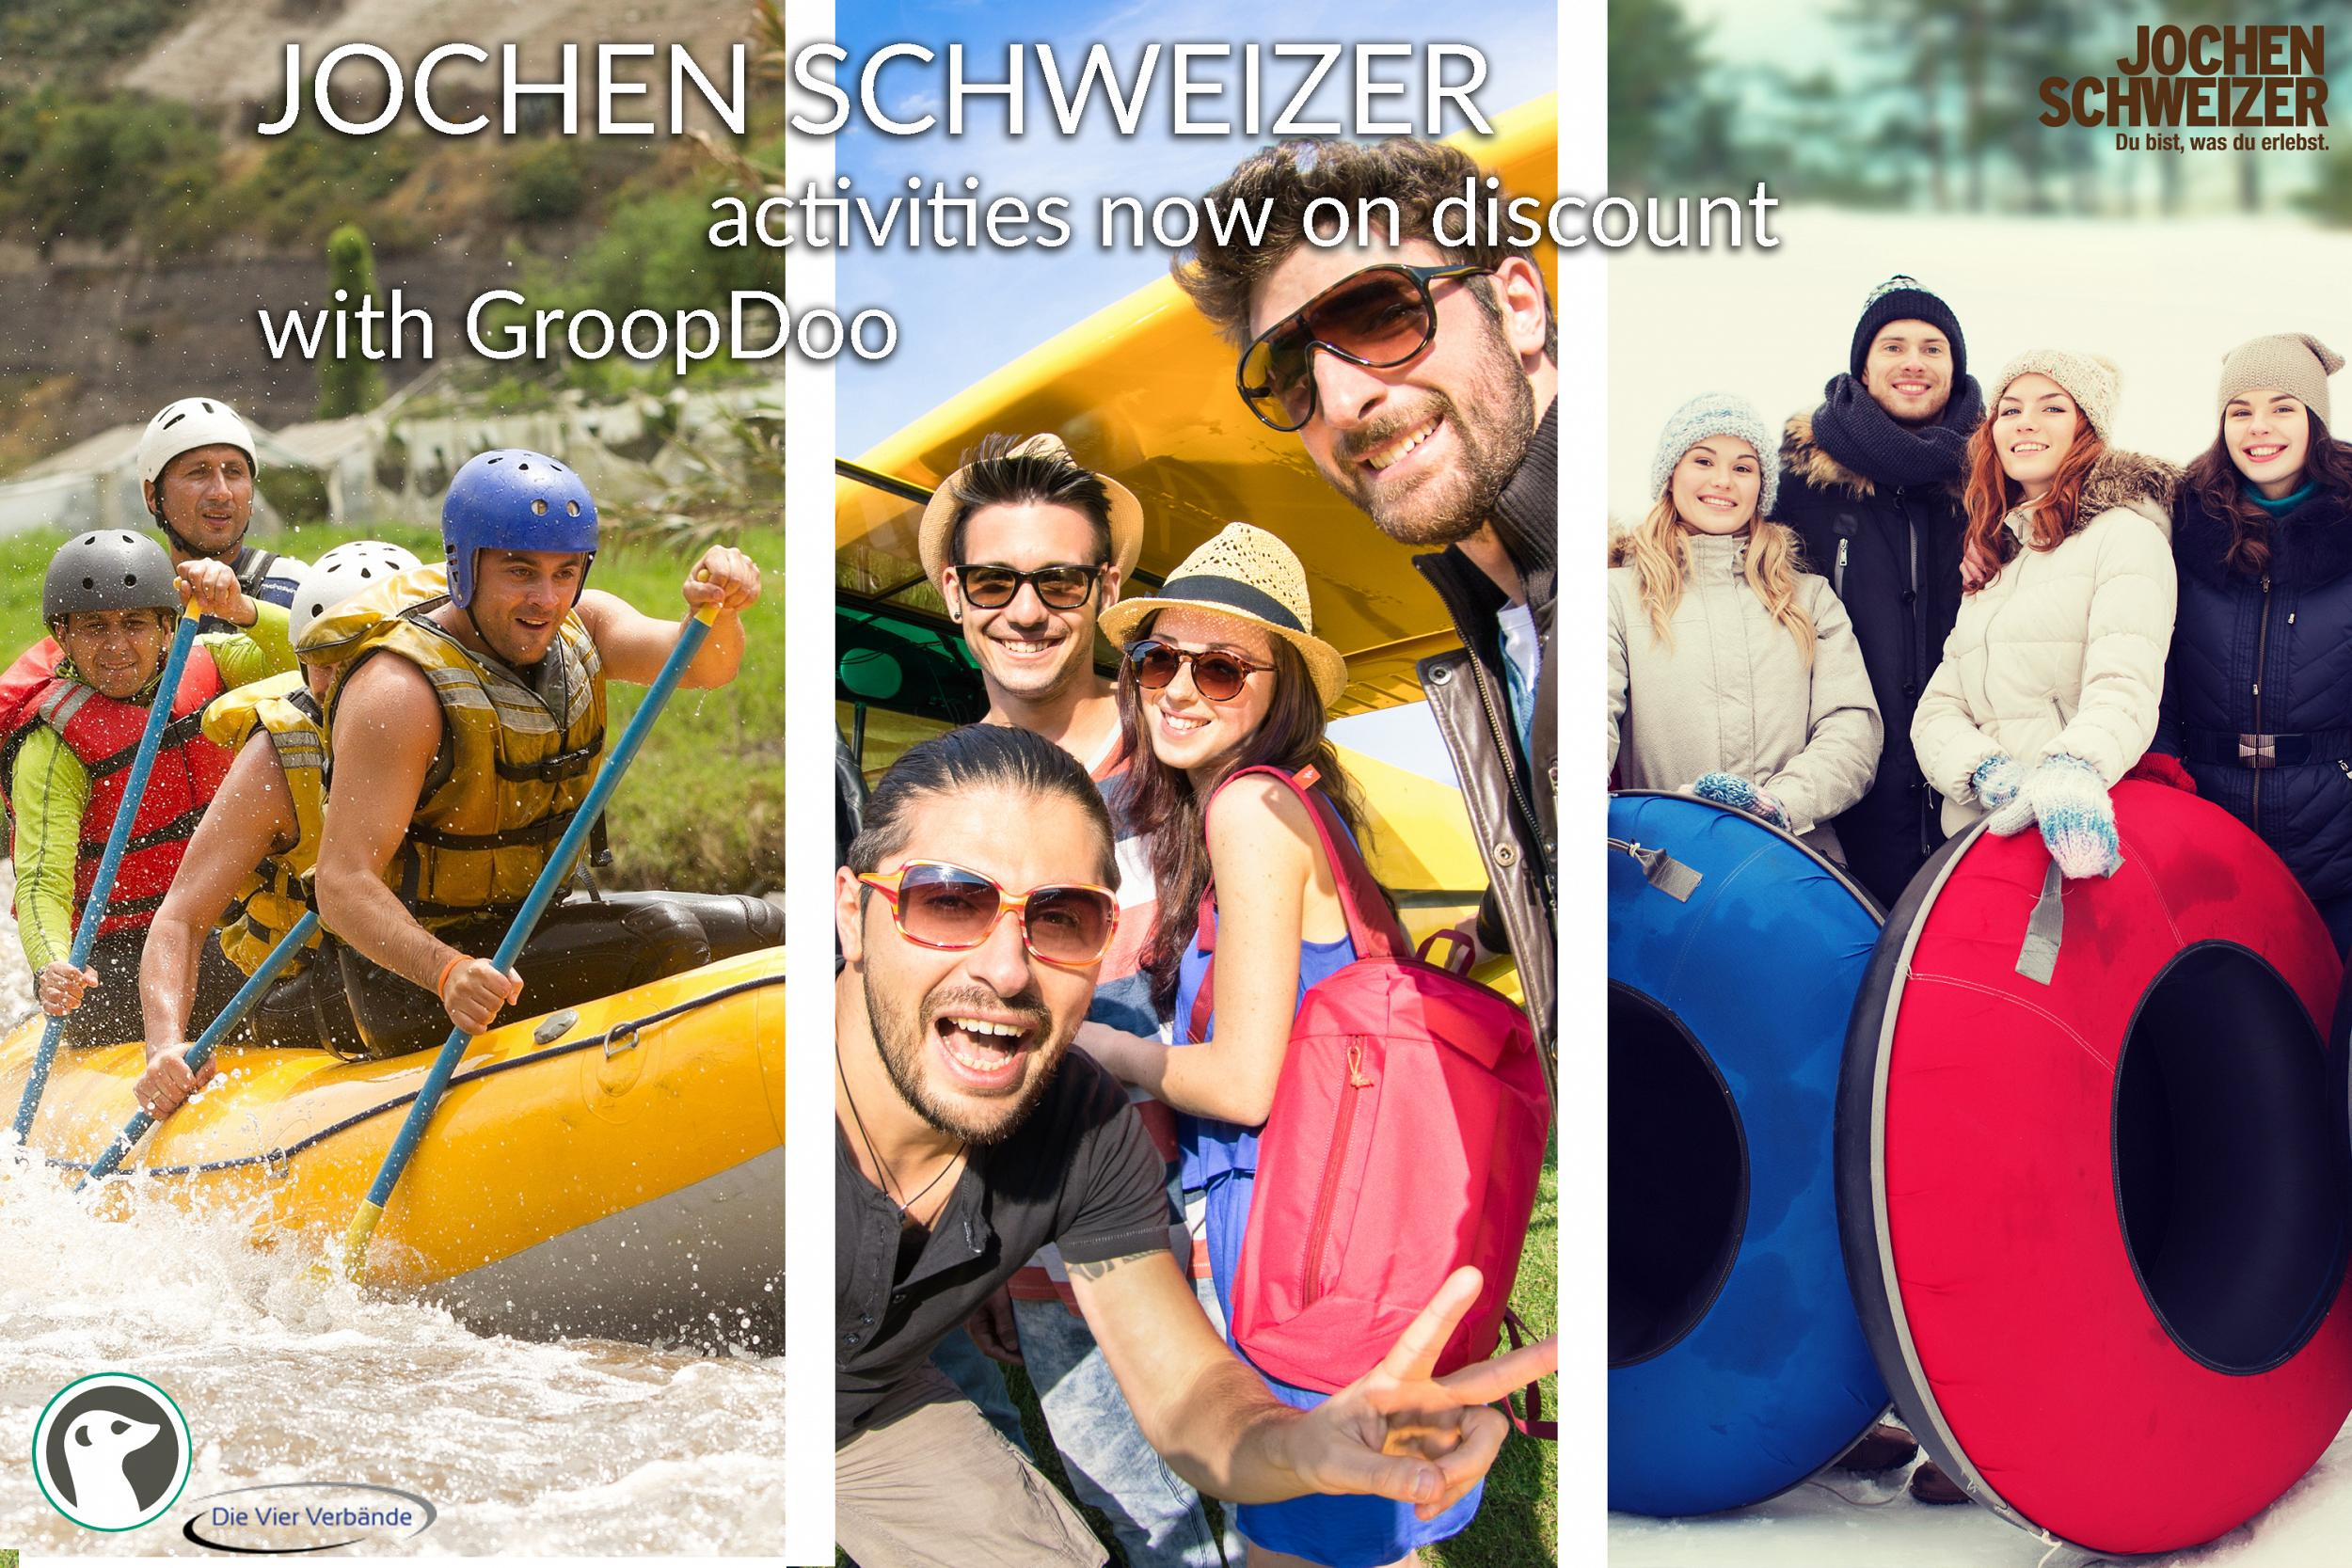 Jochen Schweizer activities now on discount with GroopDoo